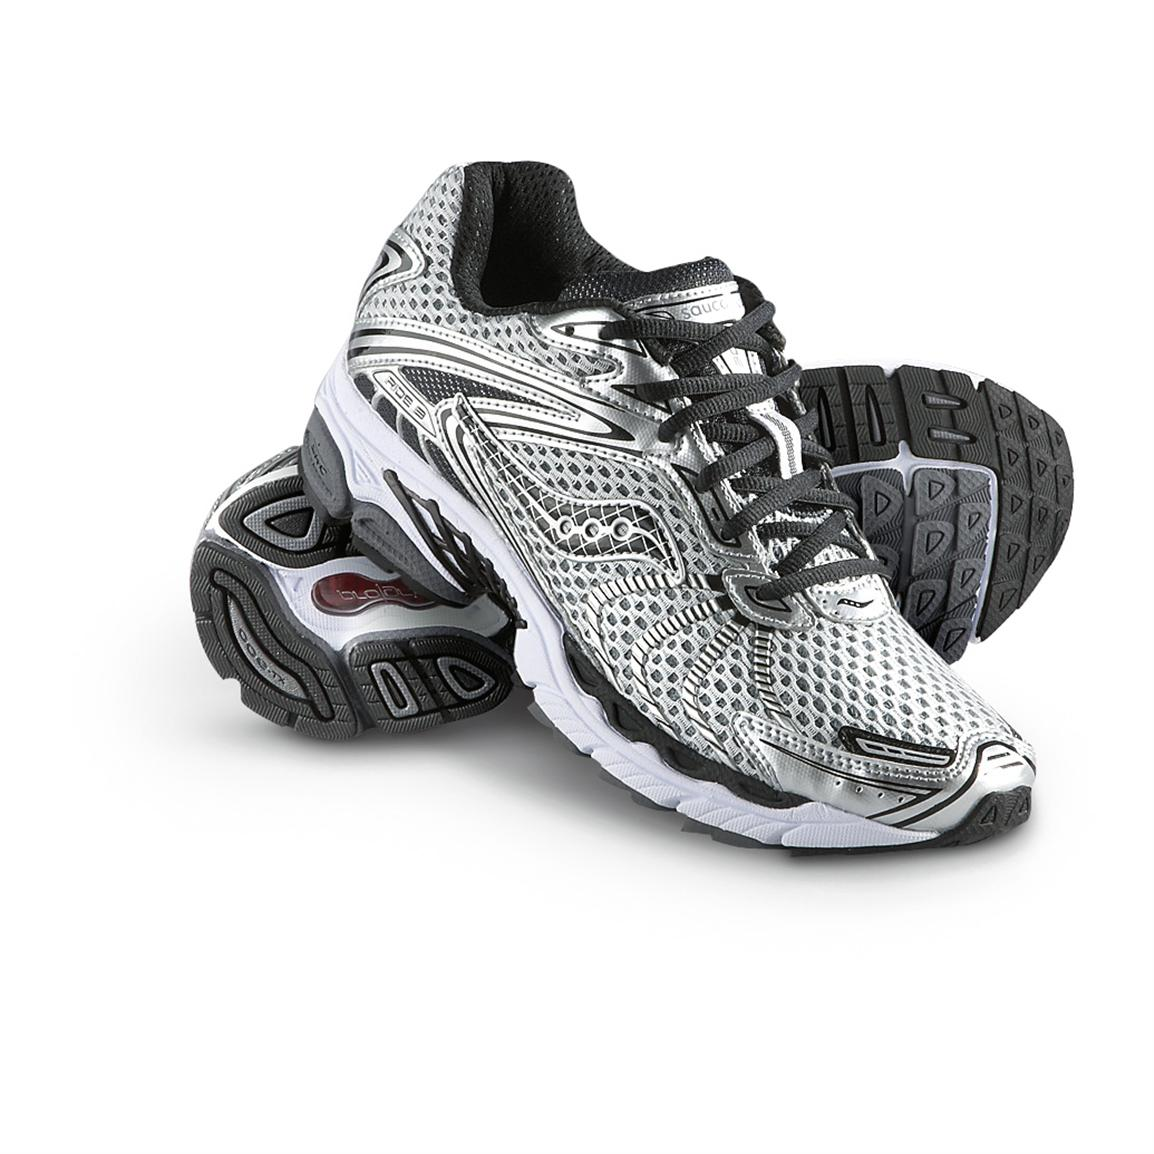 Men's Saucony® Pro Grid® Ride® Running / Cross Training Shoes